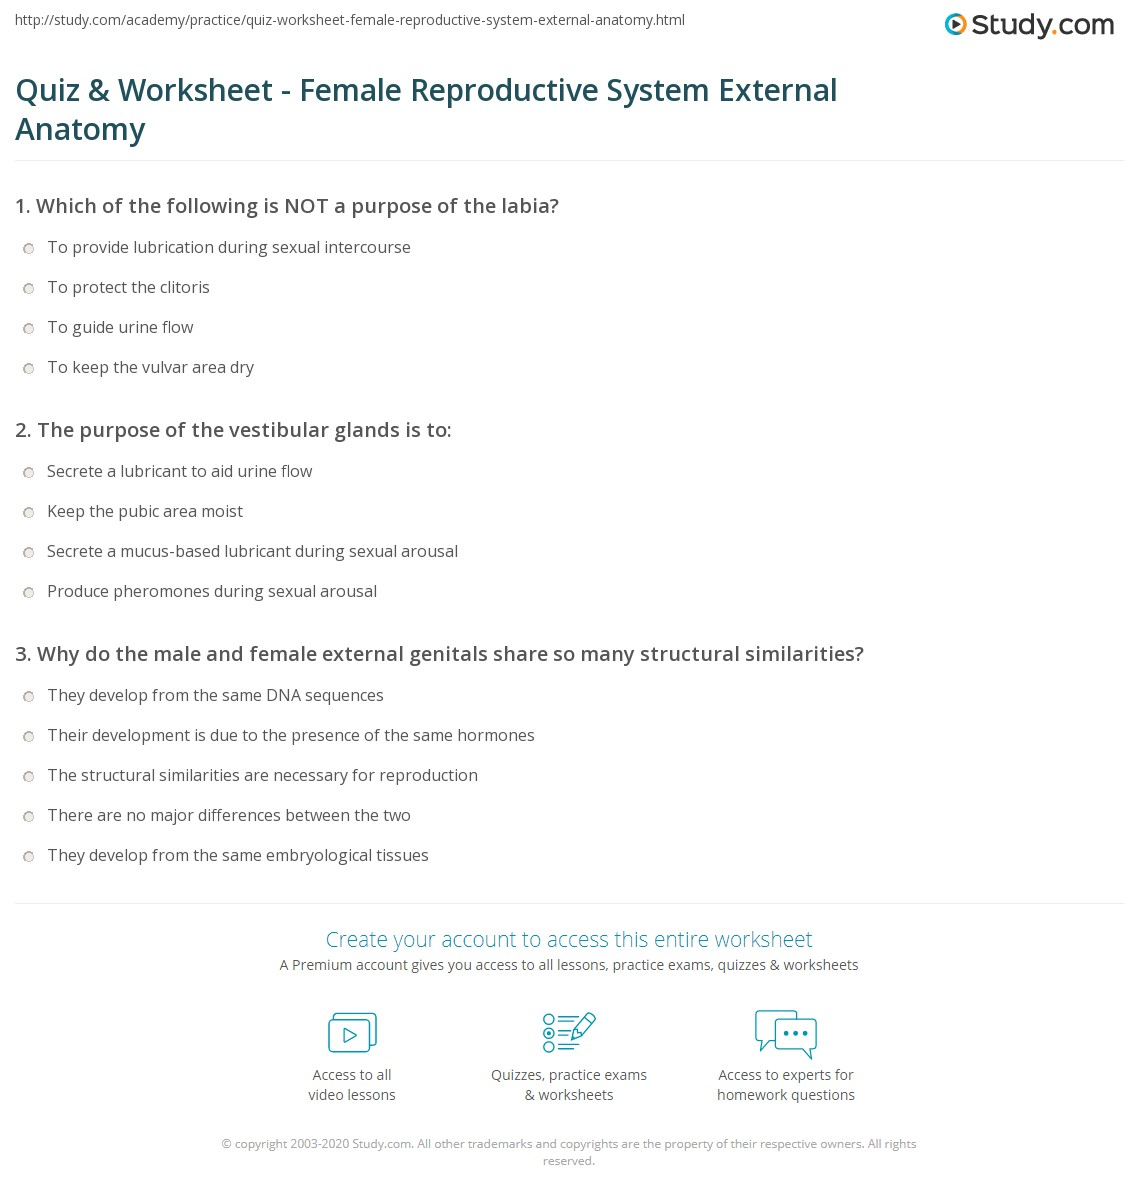 Quiz Worksheet Female Reproductive System External Anatomy